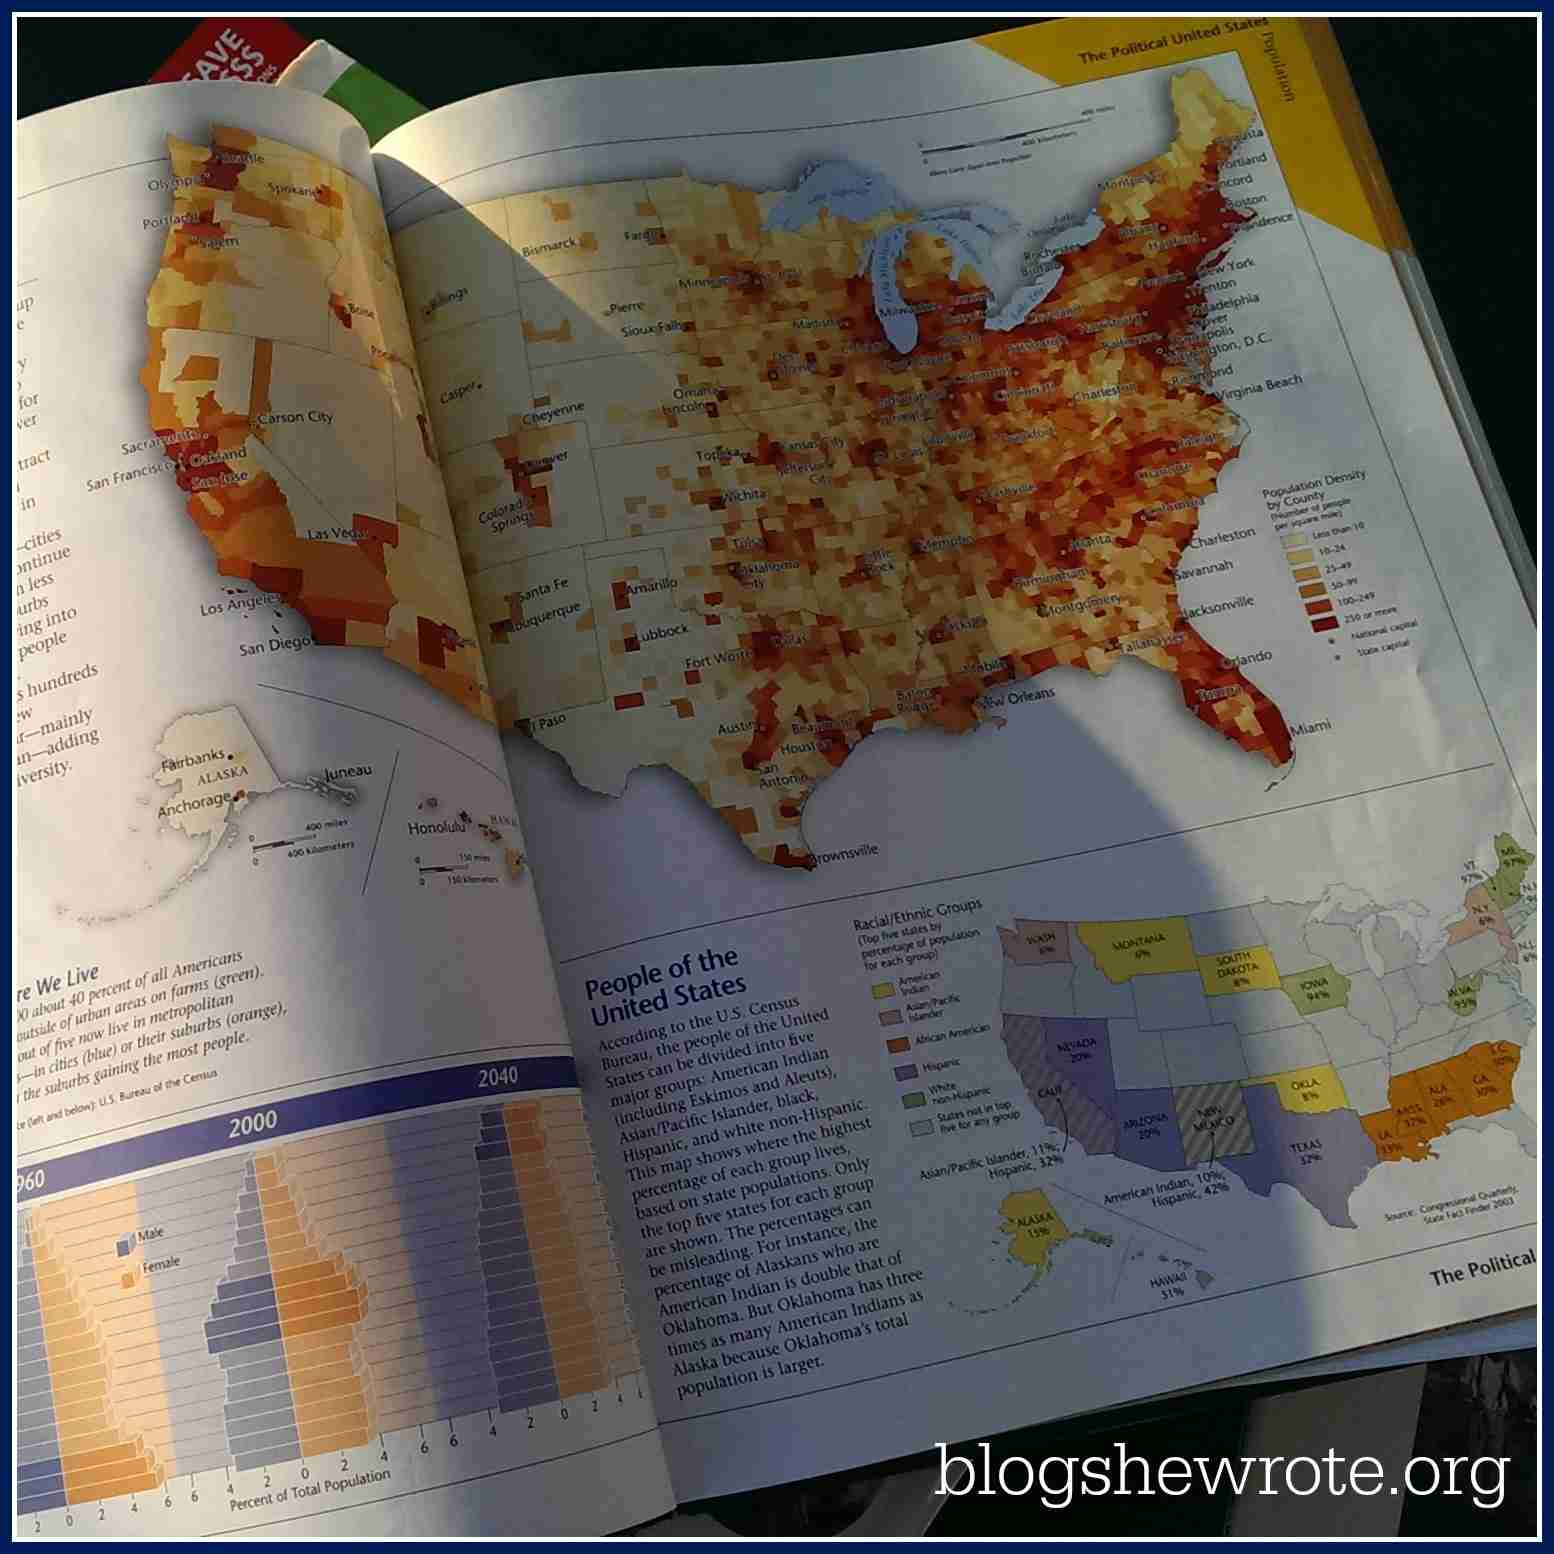 Learning geography with atlases blog she wrote our favorite united states atlases blog she wrote learning geography with atlases gumiabroncs Gallery